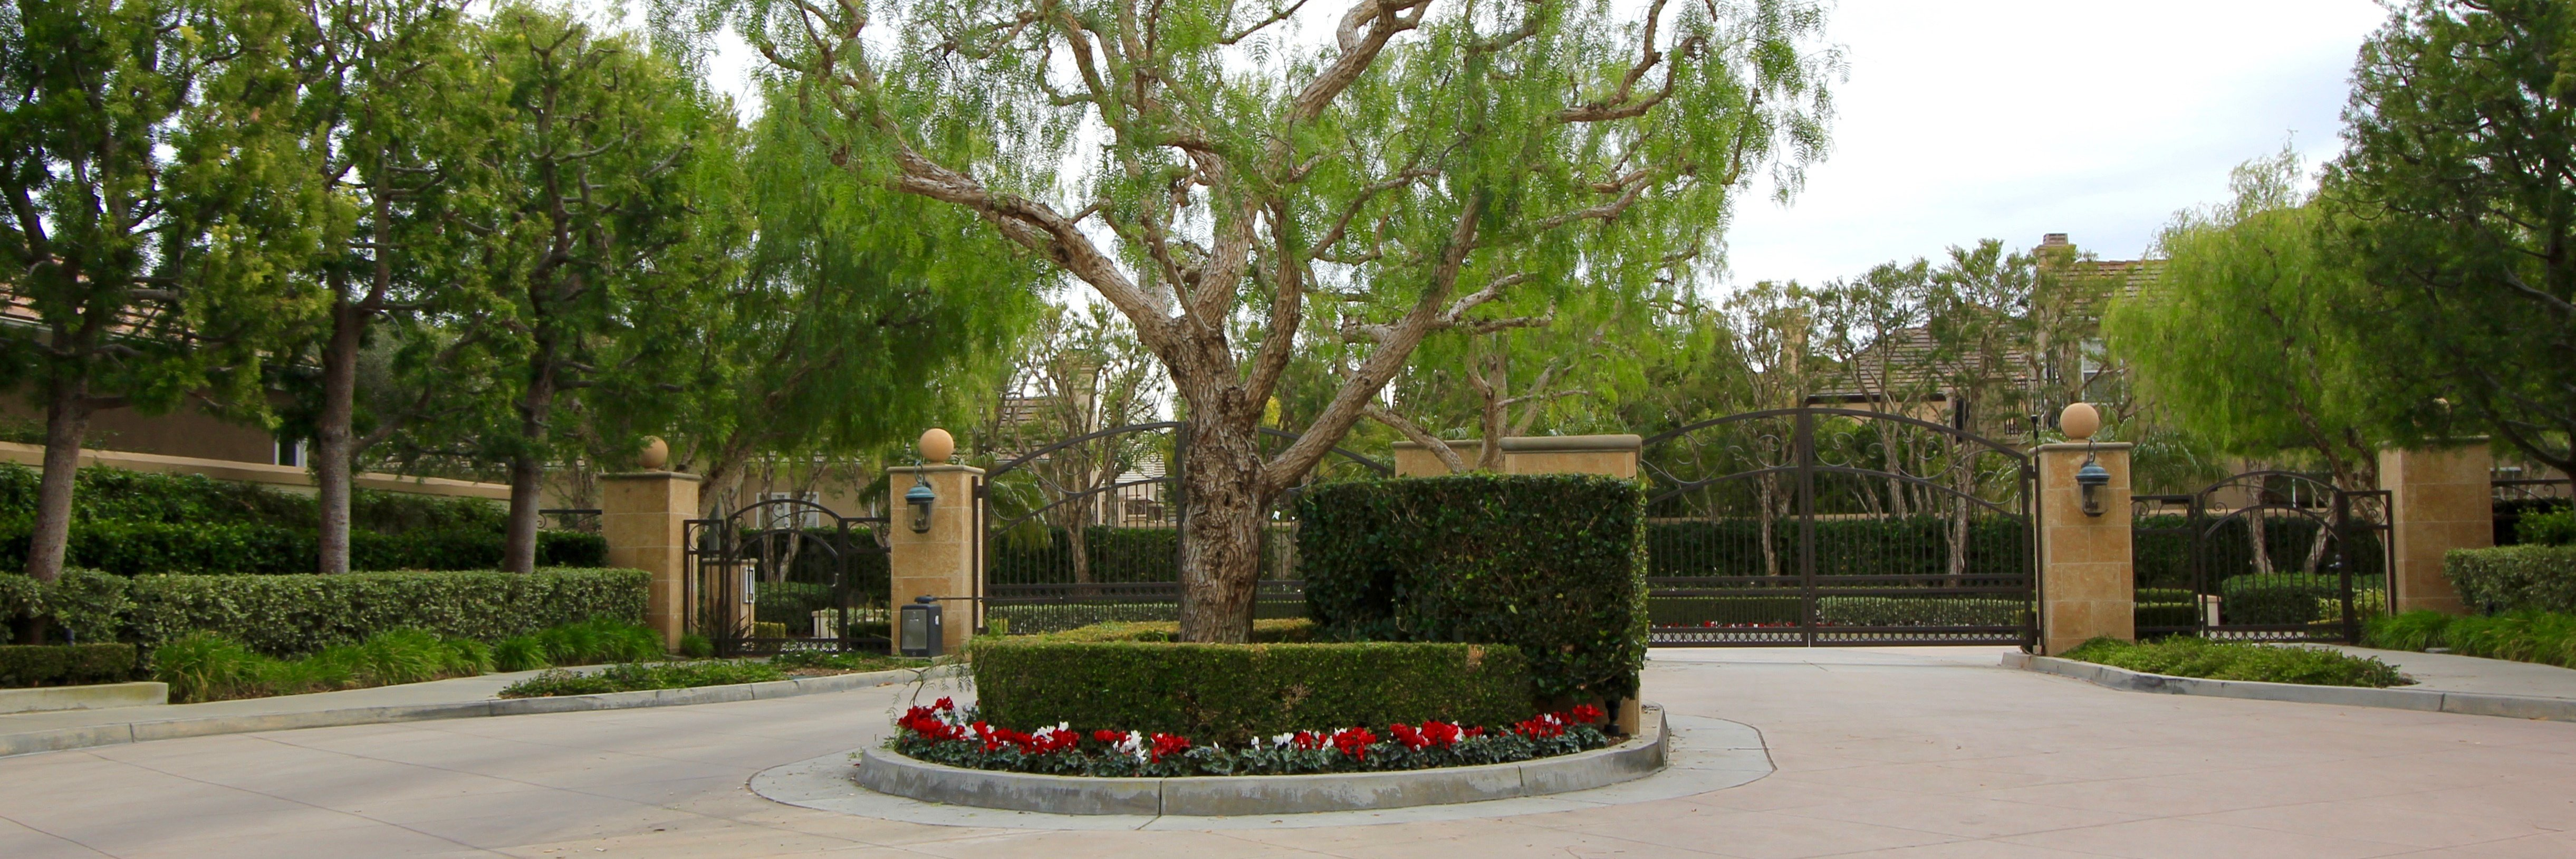 Newport Ridge Estates is a gated custom home tract in Newport Coast CA